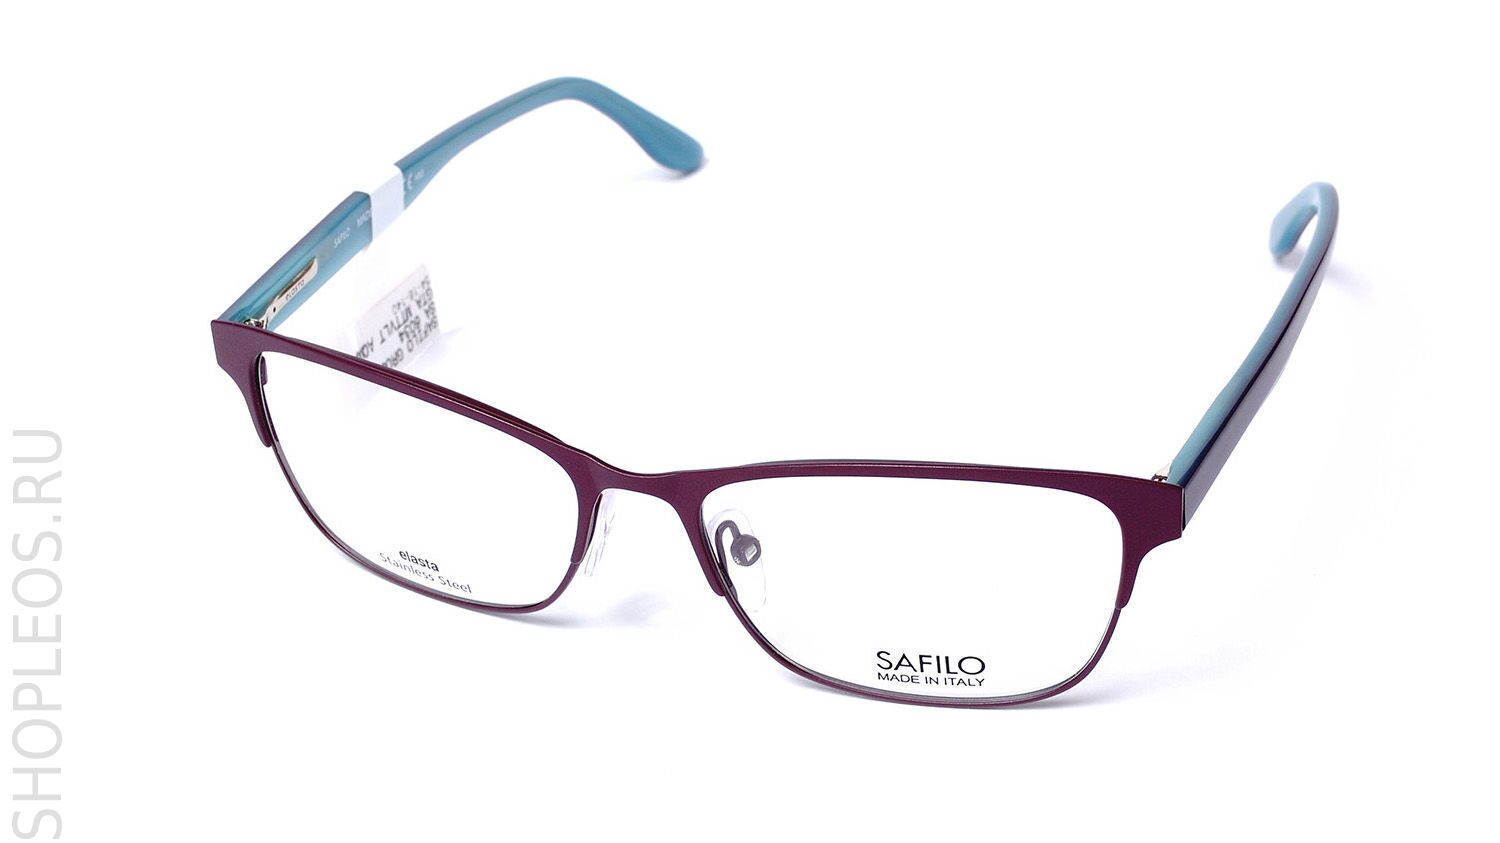 SAFILO WOMAN SA 6034 GTA